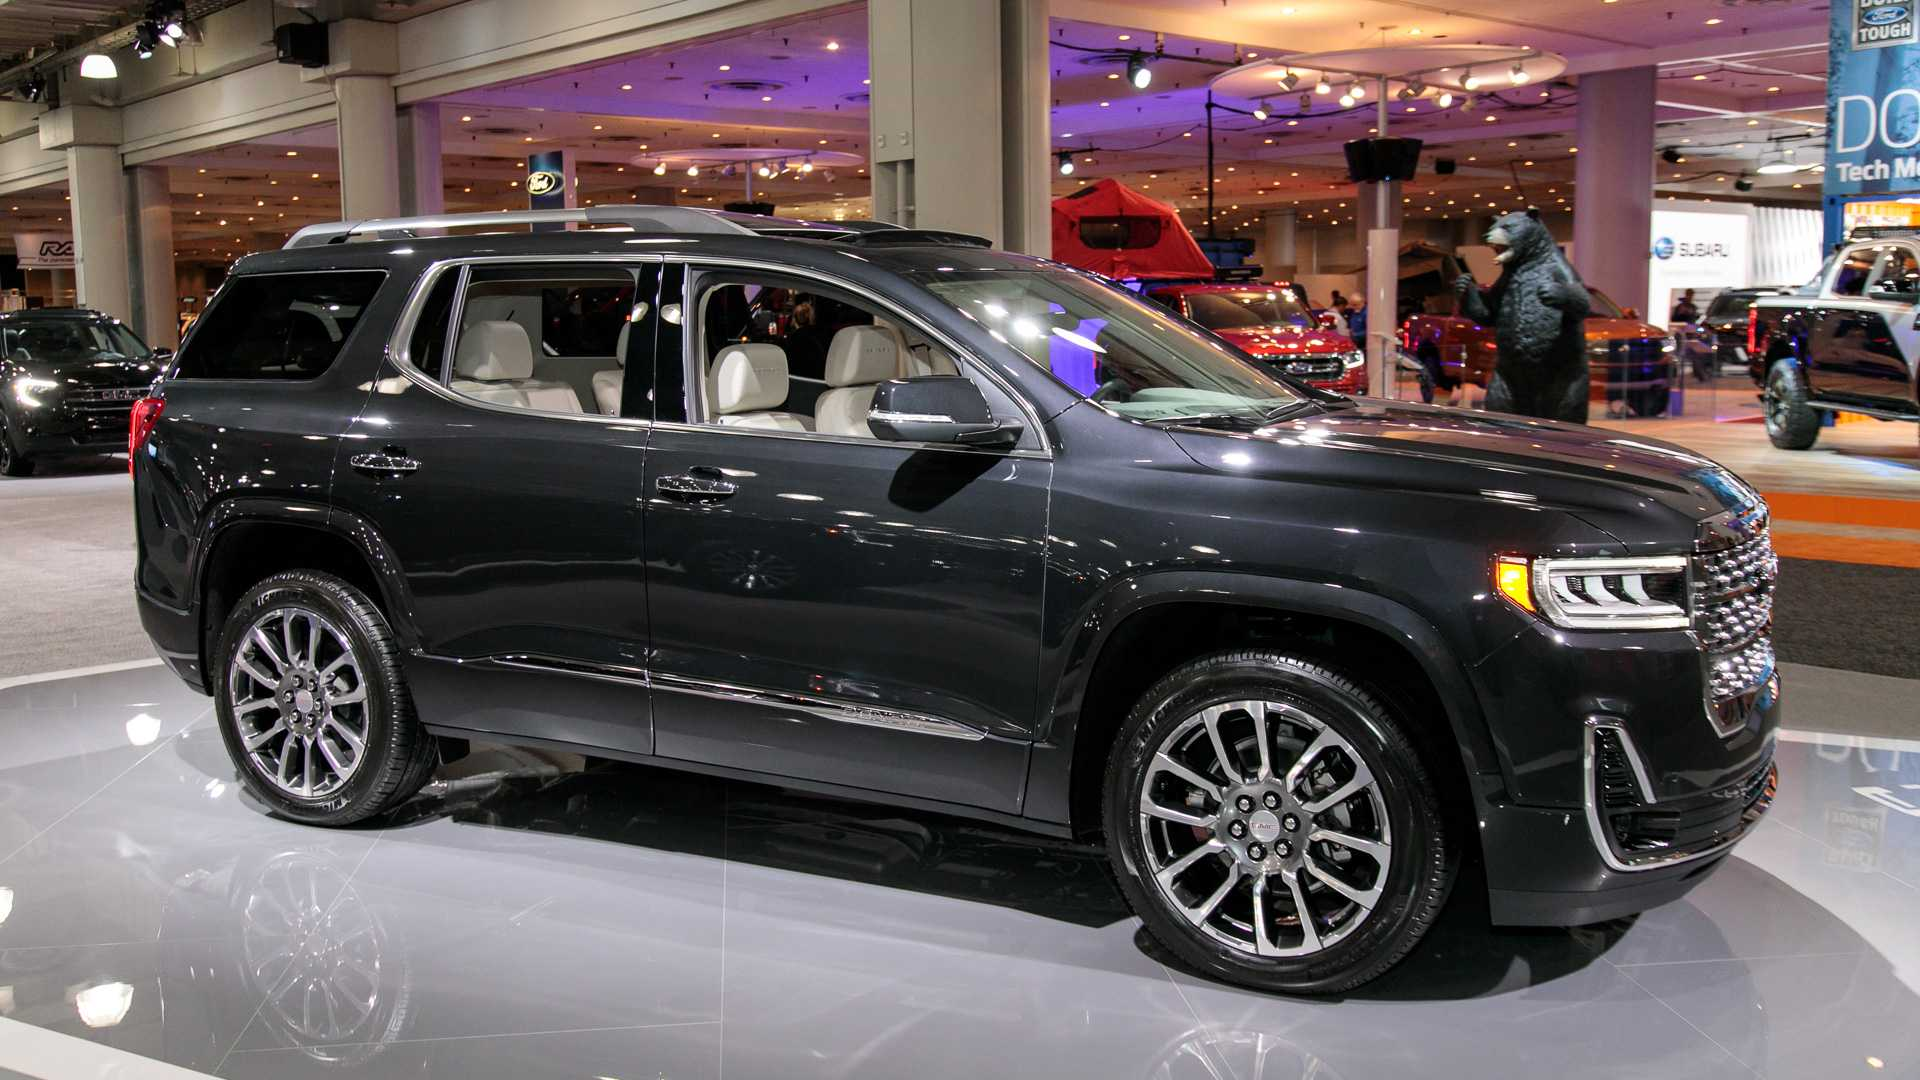 19 New 2020 Gmc Acadia Mpg Redesign with 2020 Gmc Acadia Mpg